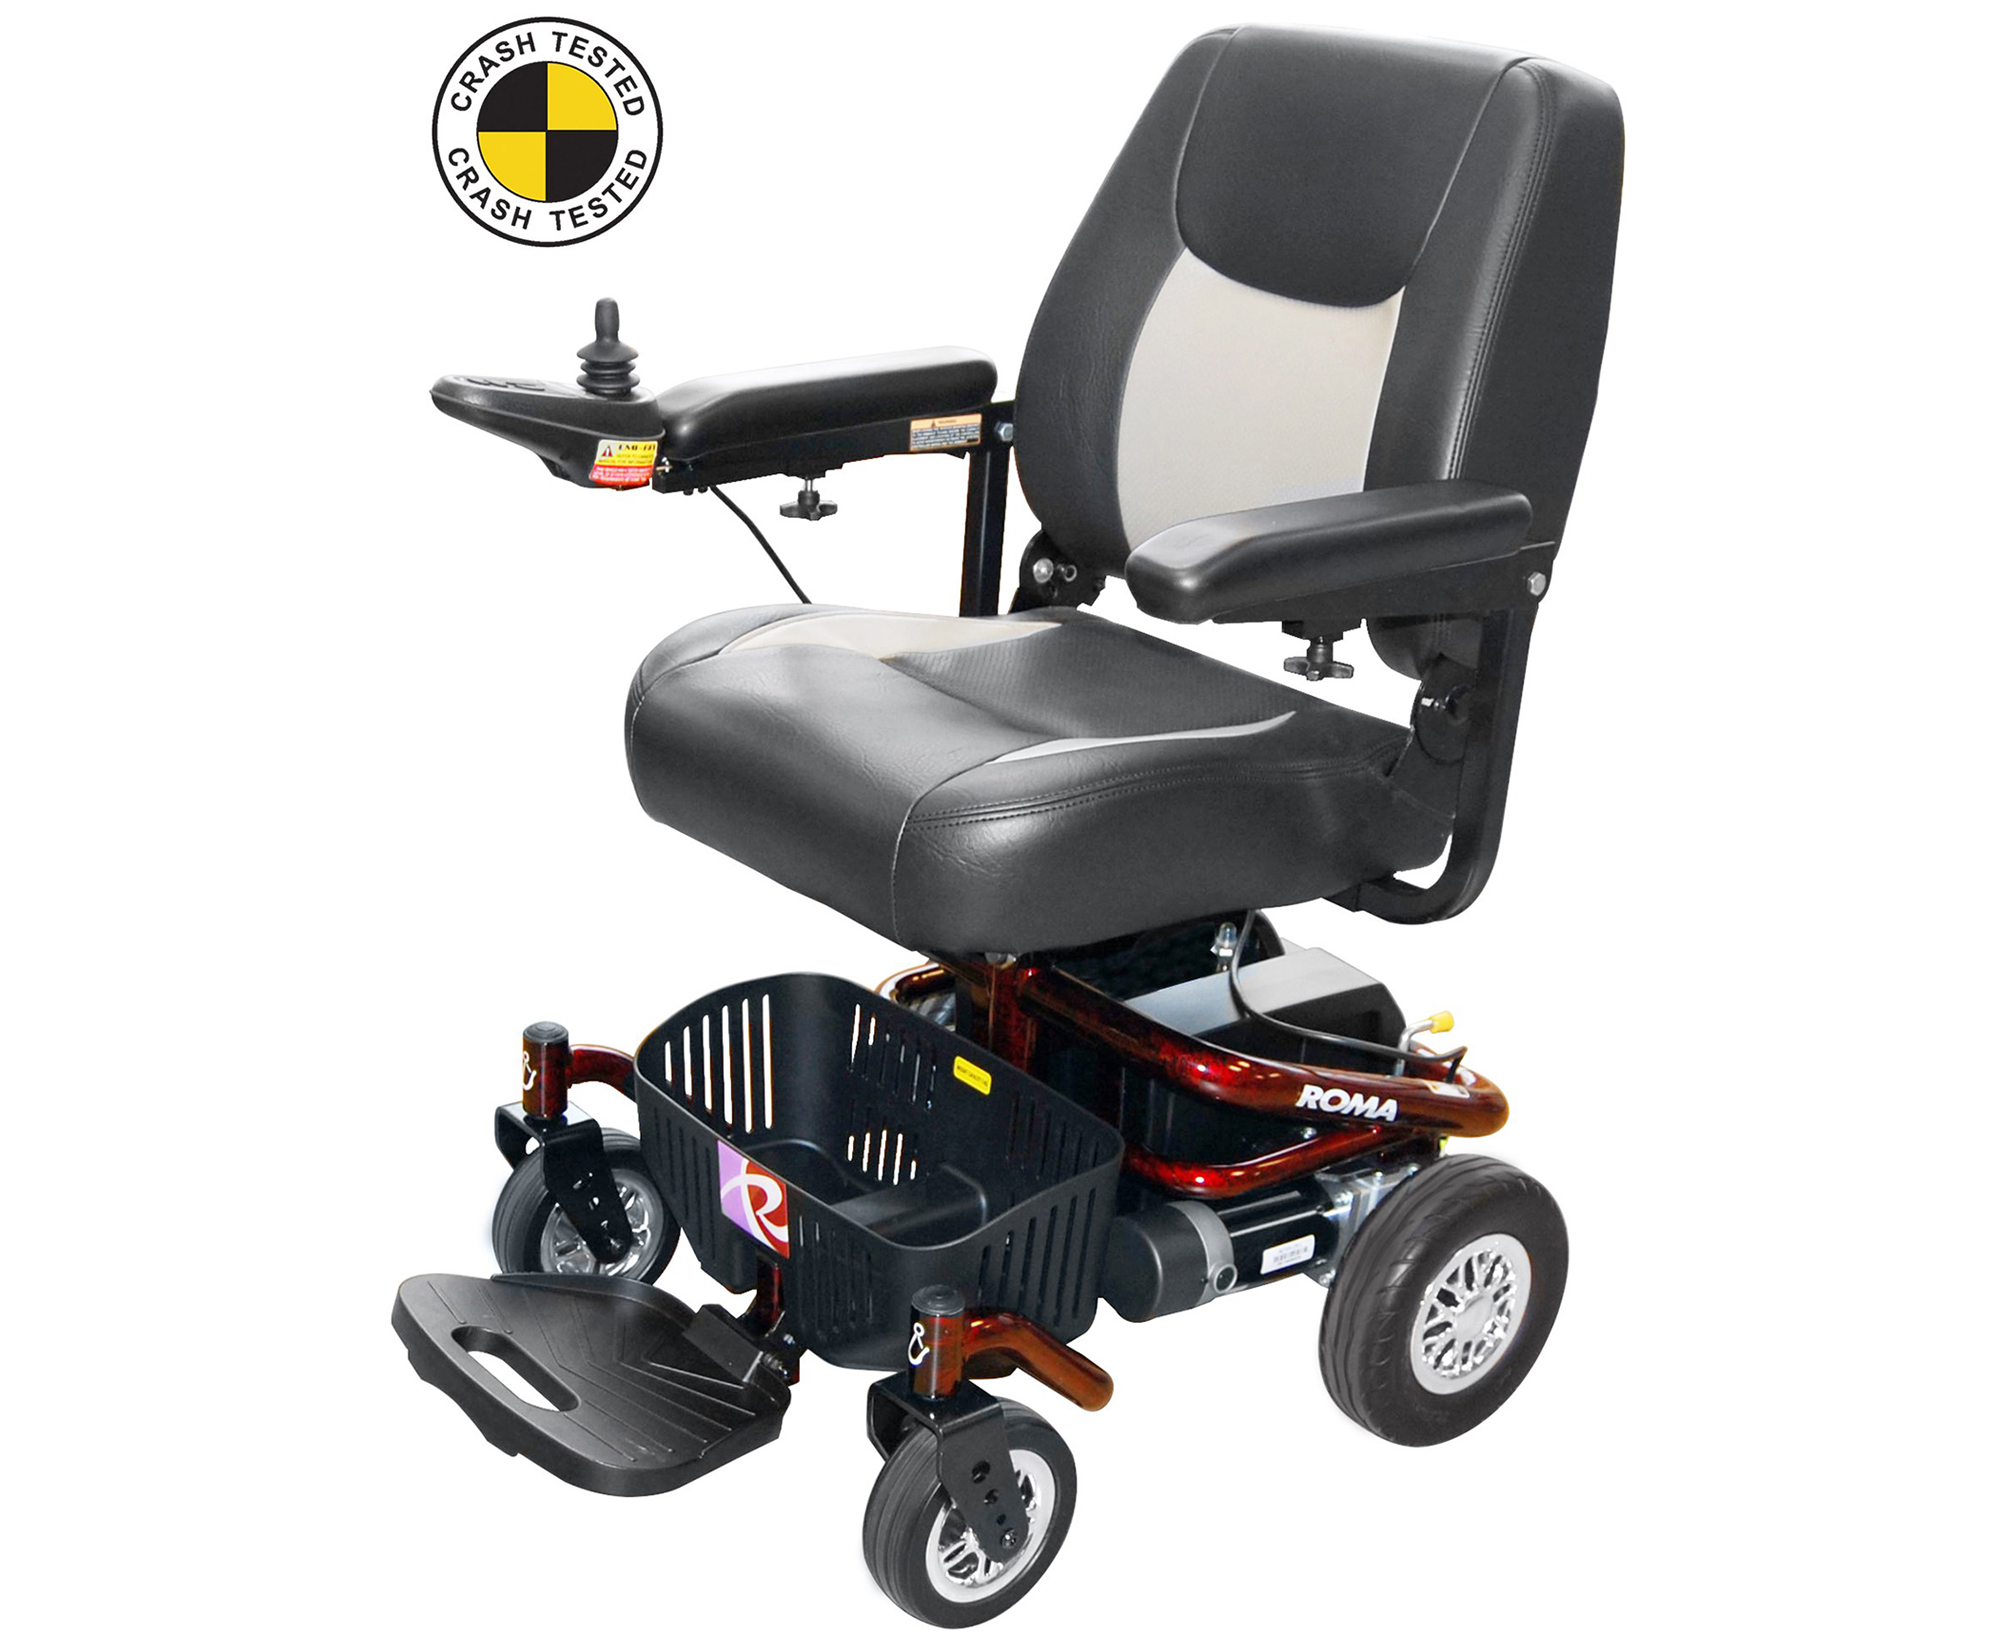 p319 wheelchairs, power chairs, mobility scooters, walkers, rollators shoprider cadiz wiring diagram at mifinder.co